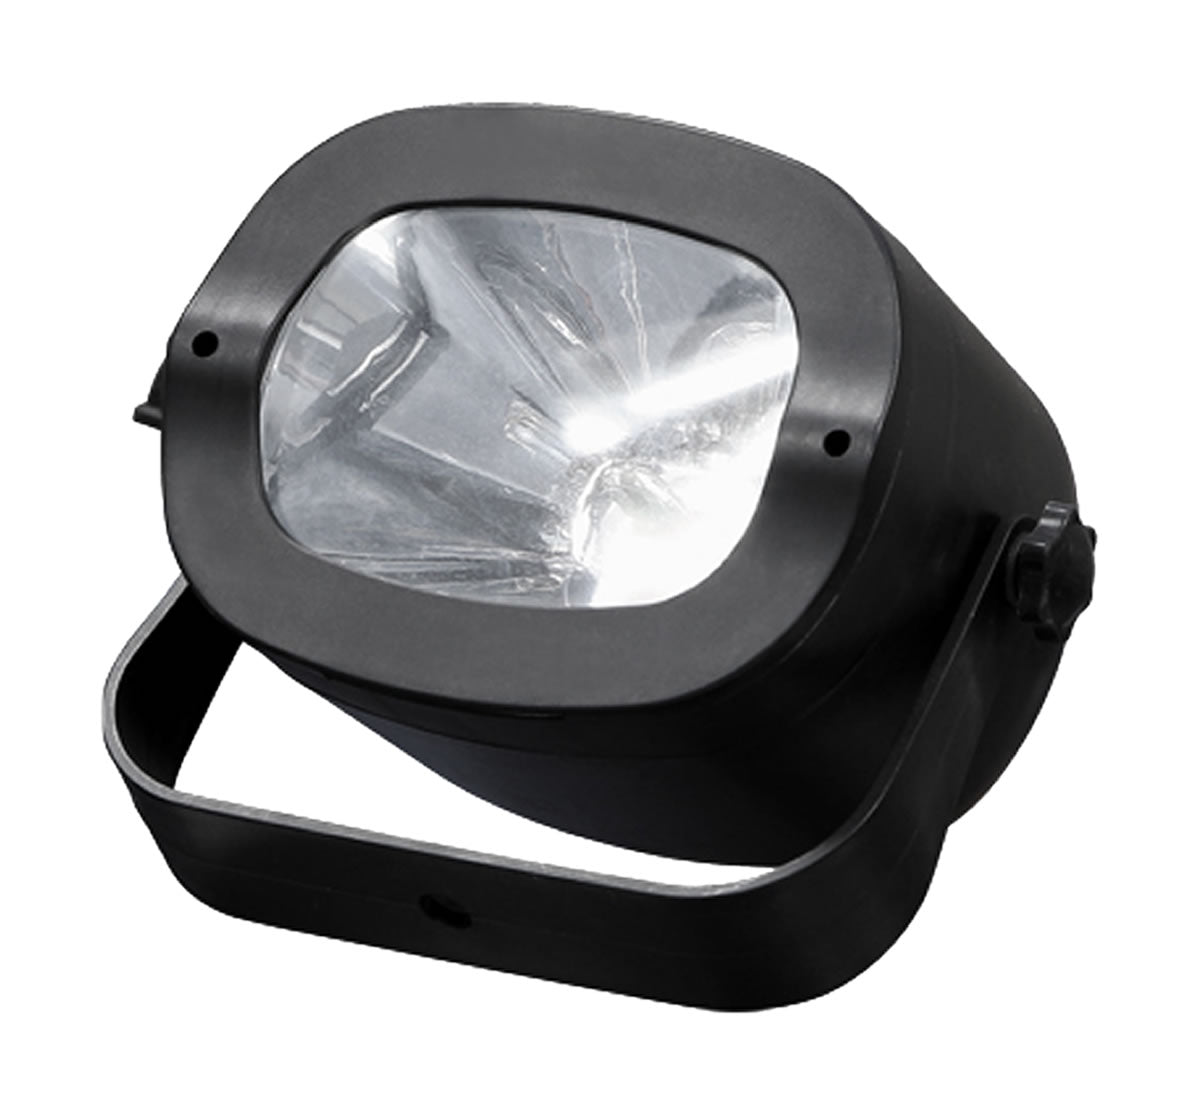 97-0437 Plastic Square Strobe Light